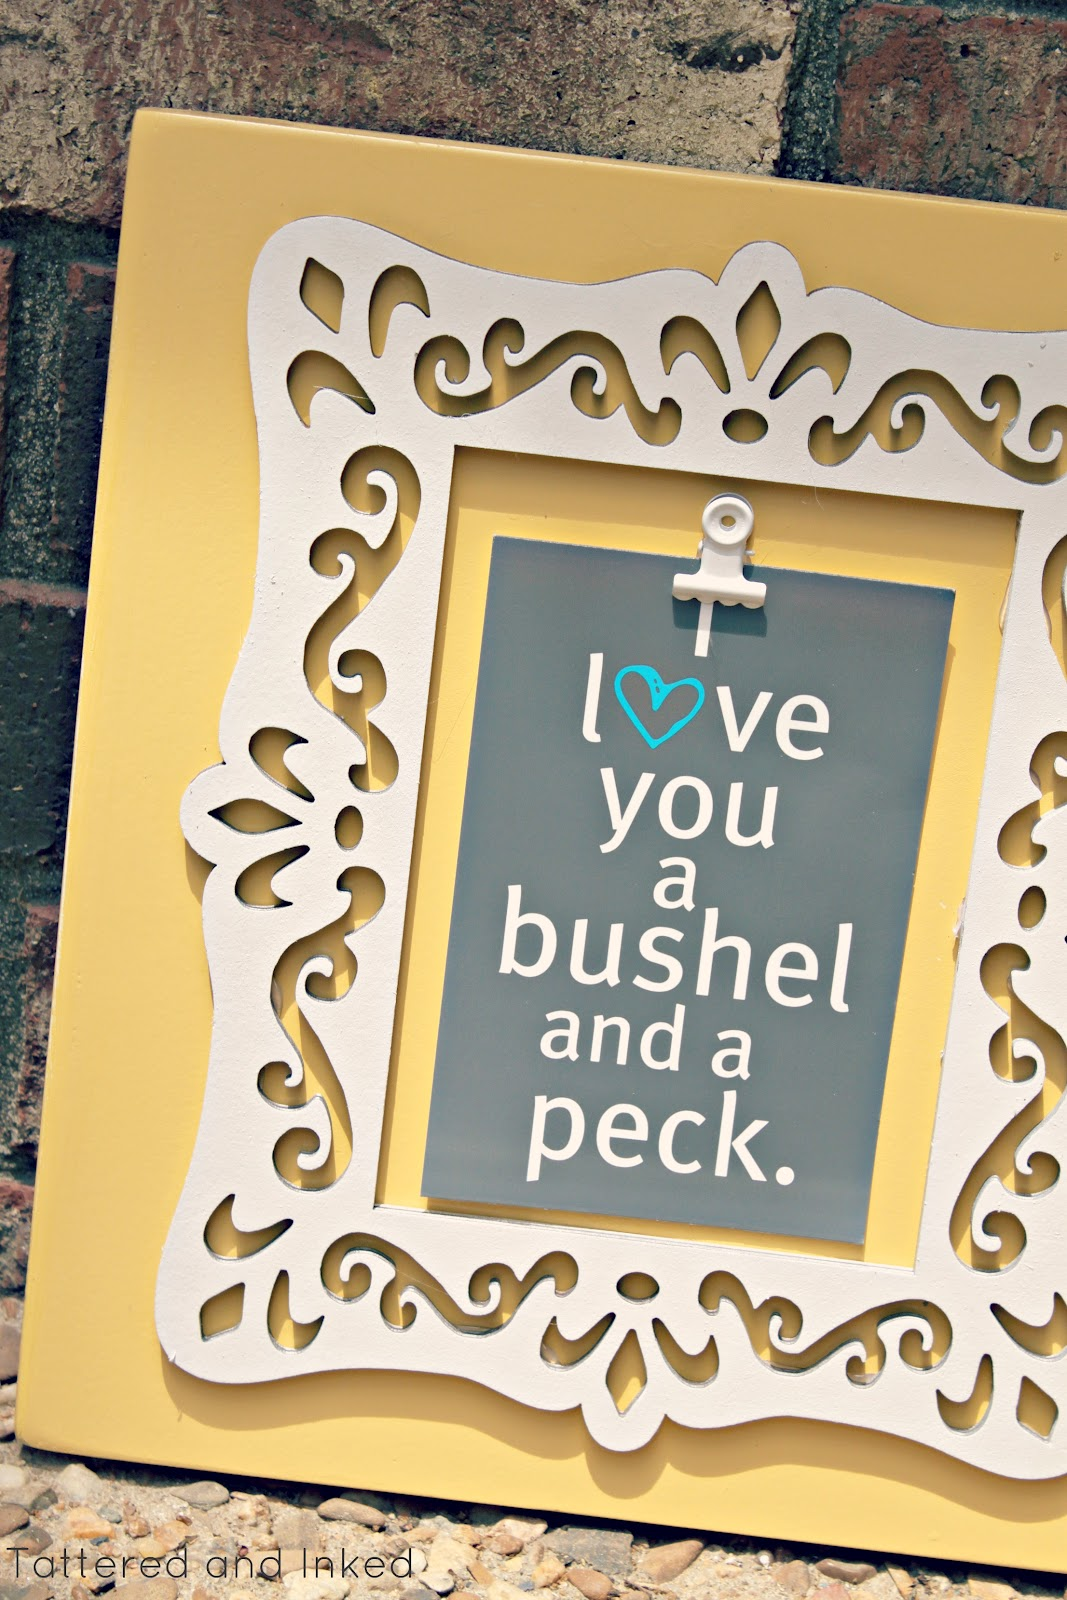 Tattered and Inked: 20 Minute Gorgeous Cut-out Frame!